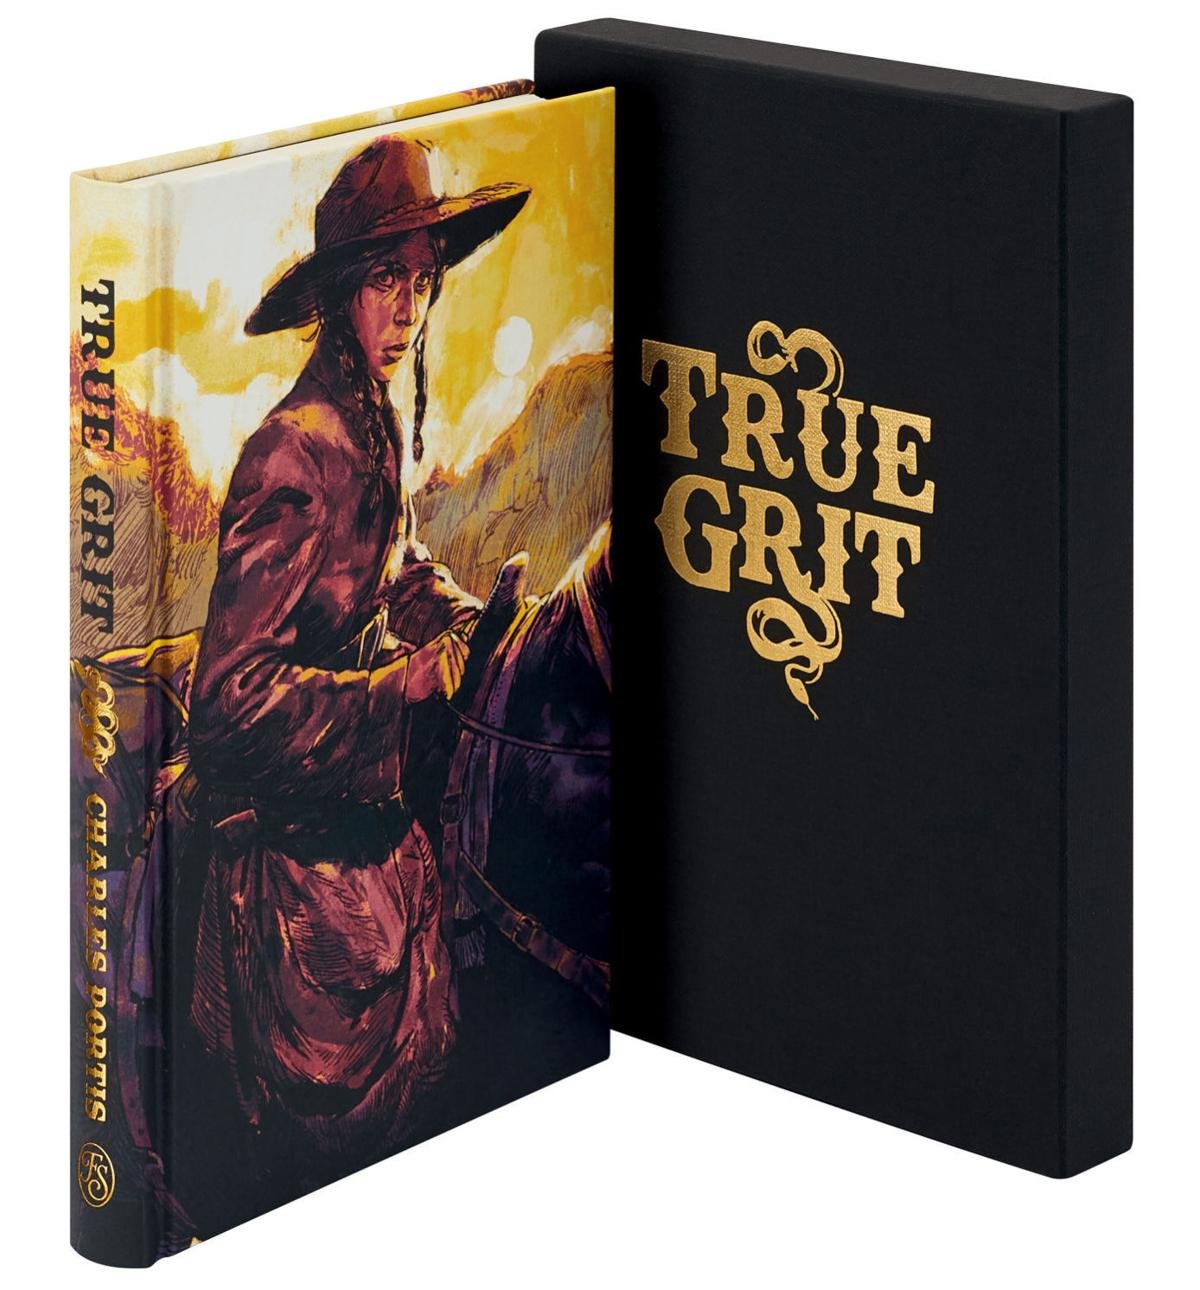 'True Grit' by Charles Portis